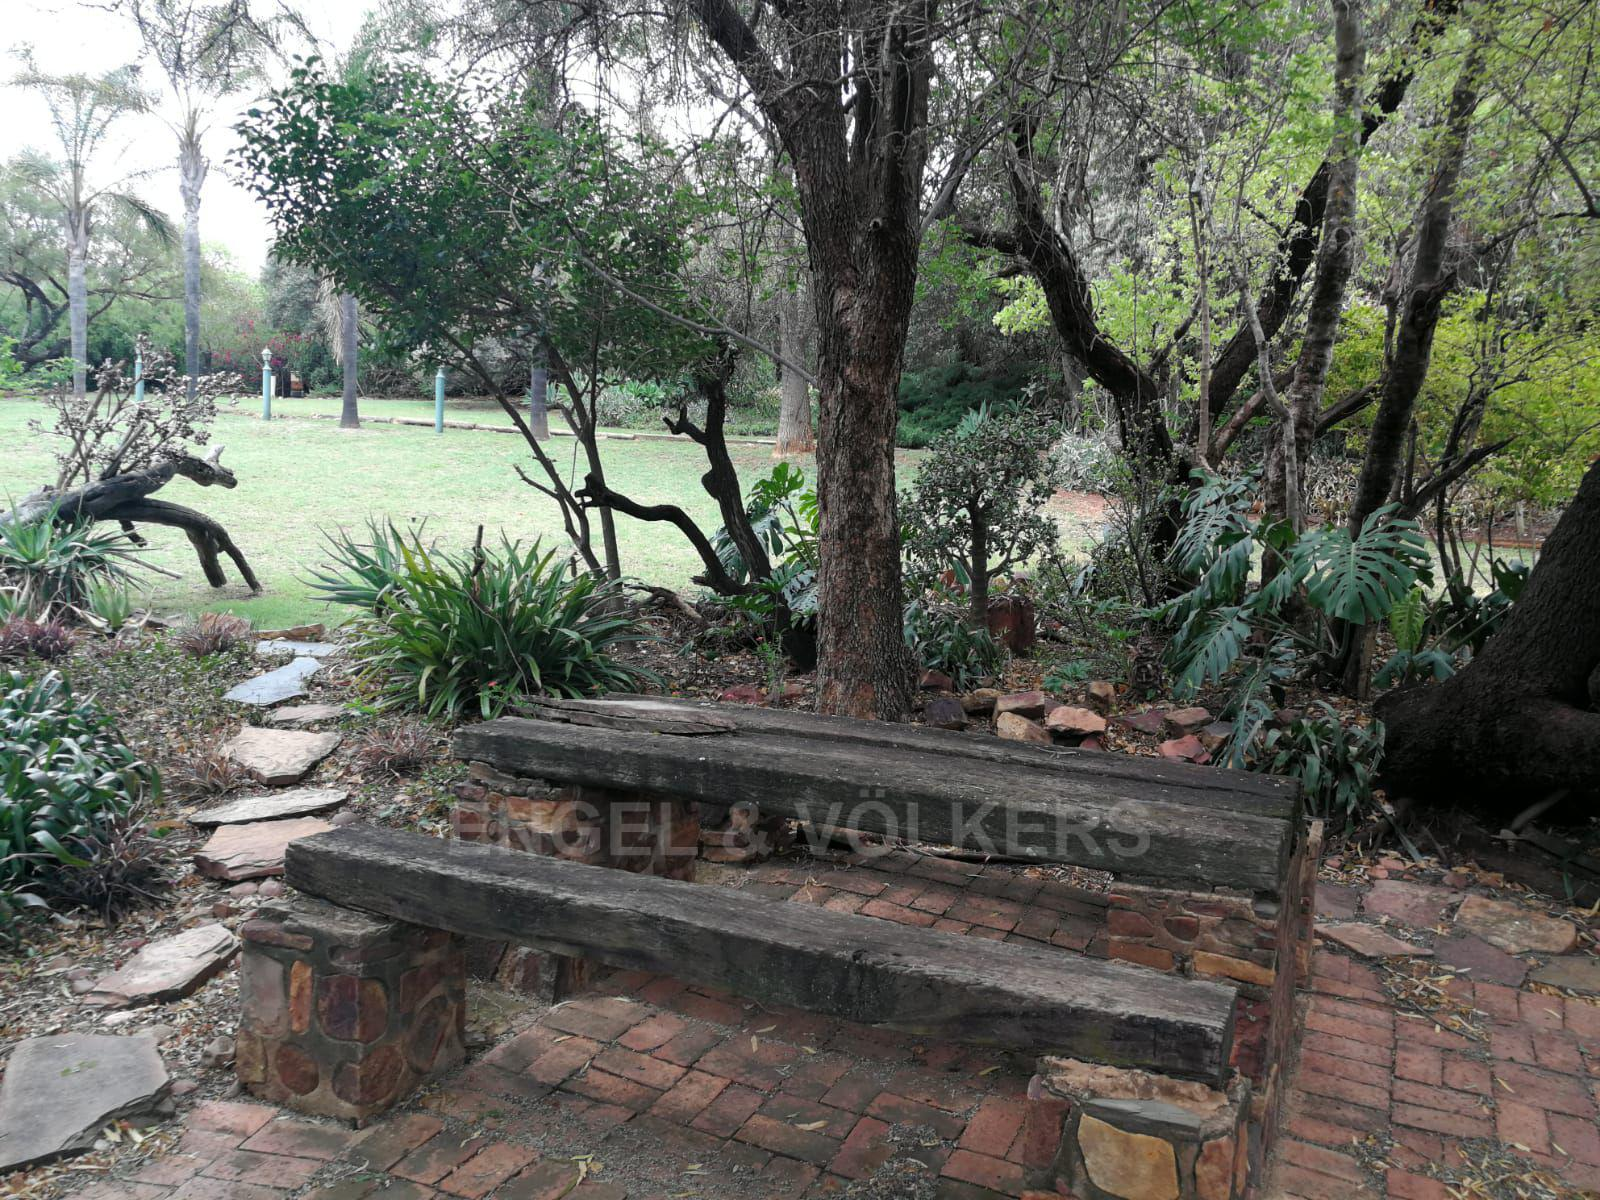 Land in Hartbeespoort Dam Area - Lovely garden features